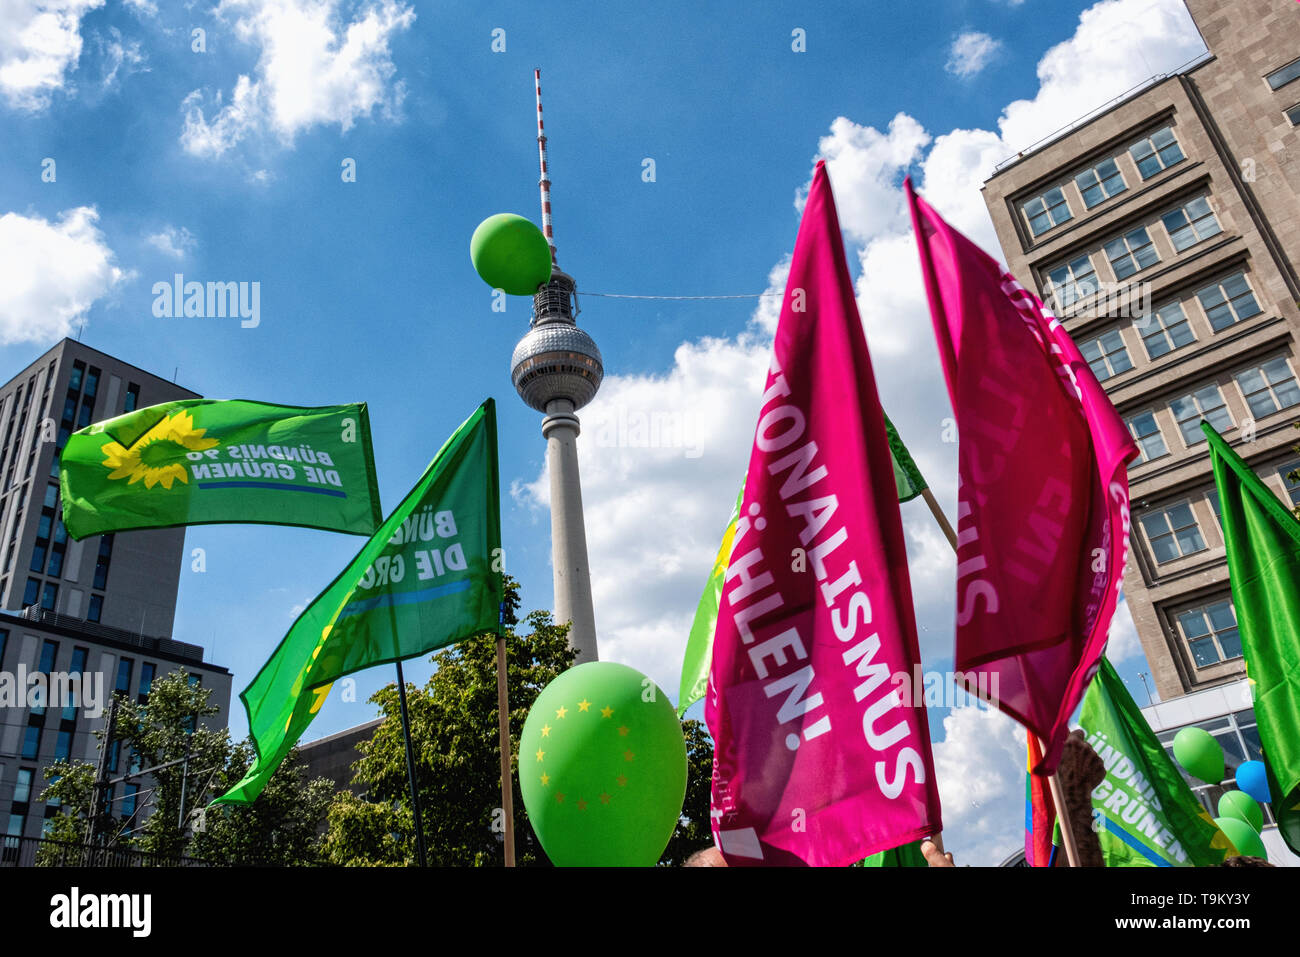 """Germany, Berlin, Mitte, 19th May 2019. """"One Europe for All' Demonstration - people gathered at Alexanderplatz as part of a Nationwide demonstration to promote solidarity in Europe in a run up to the upcoming European Elections. The Demo was organised by NGOs including Campact, Pro Asyl, Attac, Mehr Demokratie and Naturfreunde, the Seebrücke movement & Paritätischer Wohlfahrtsverband to oppose the racism, hate and resentment against minorities that is stirred up by right-wing activists and policies. Credit: Eden Breitz/Alamy Stock Photo"""